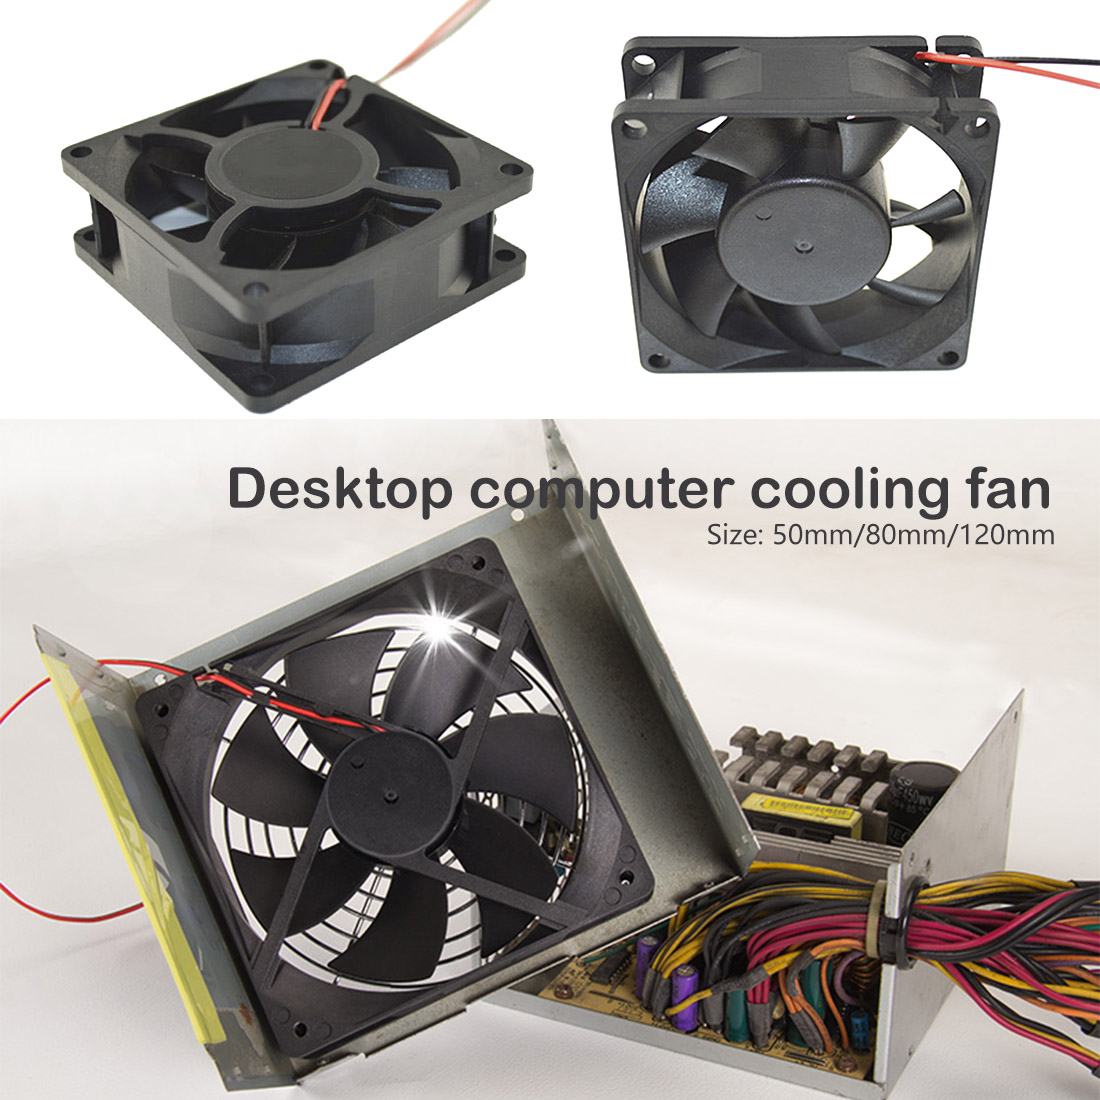 <font><b>12V</b></font> DC <font><b>fan</b></font> 50 80 <font><b>120</b></font> <font><b>mm</b></font> 2 Pin Connector Cooling <font><b>Fan</b></font> for Computer Case CPU Cooler Radiator Computer Accessories CPU Cooling <font><b>Fans</b></font> image